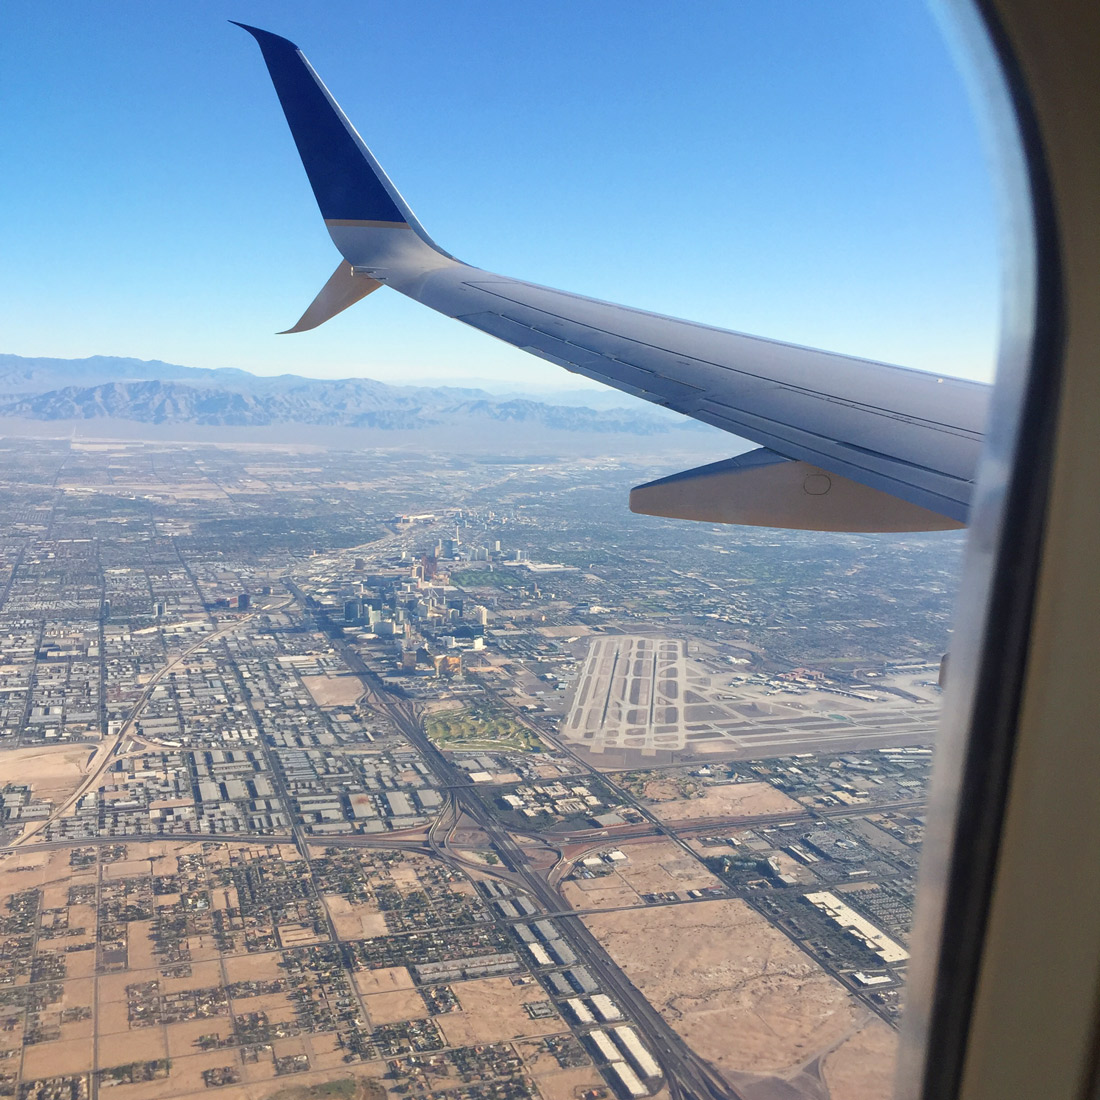 bag-at-you-travel-blog-las-vegas-from-the-air